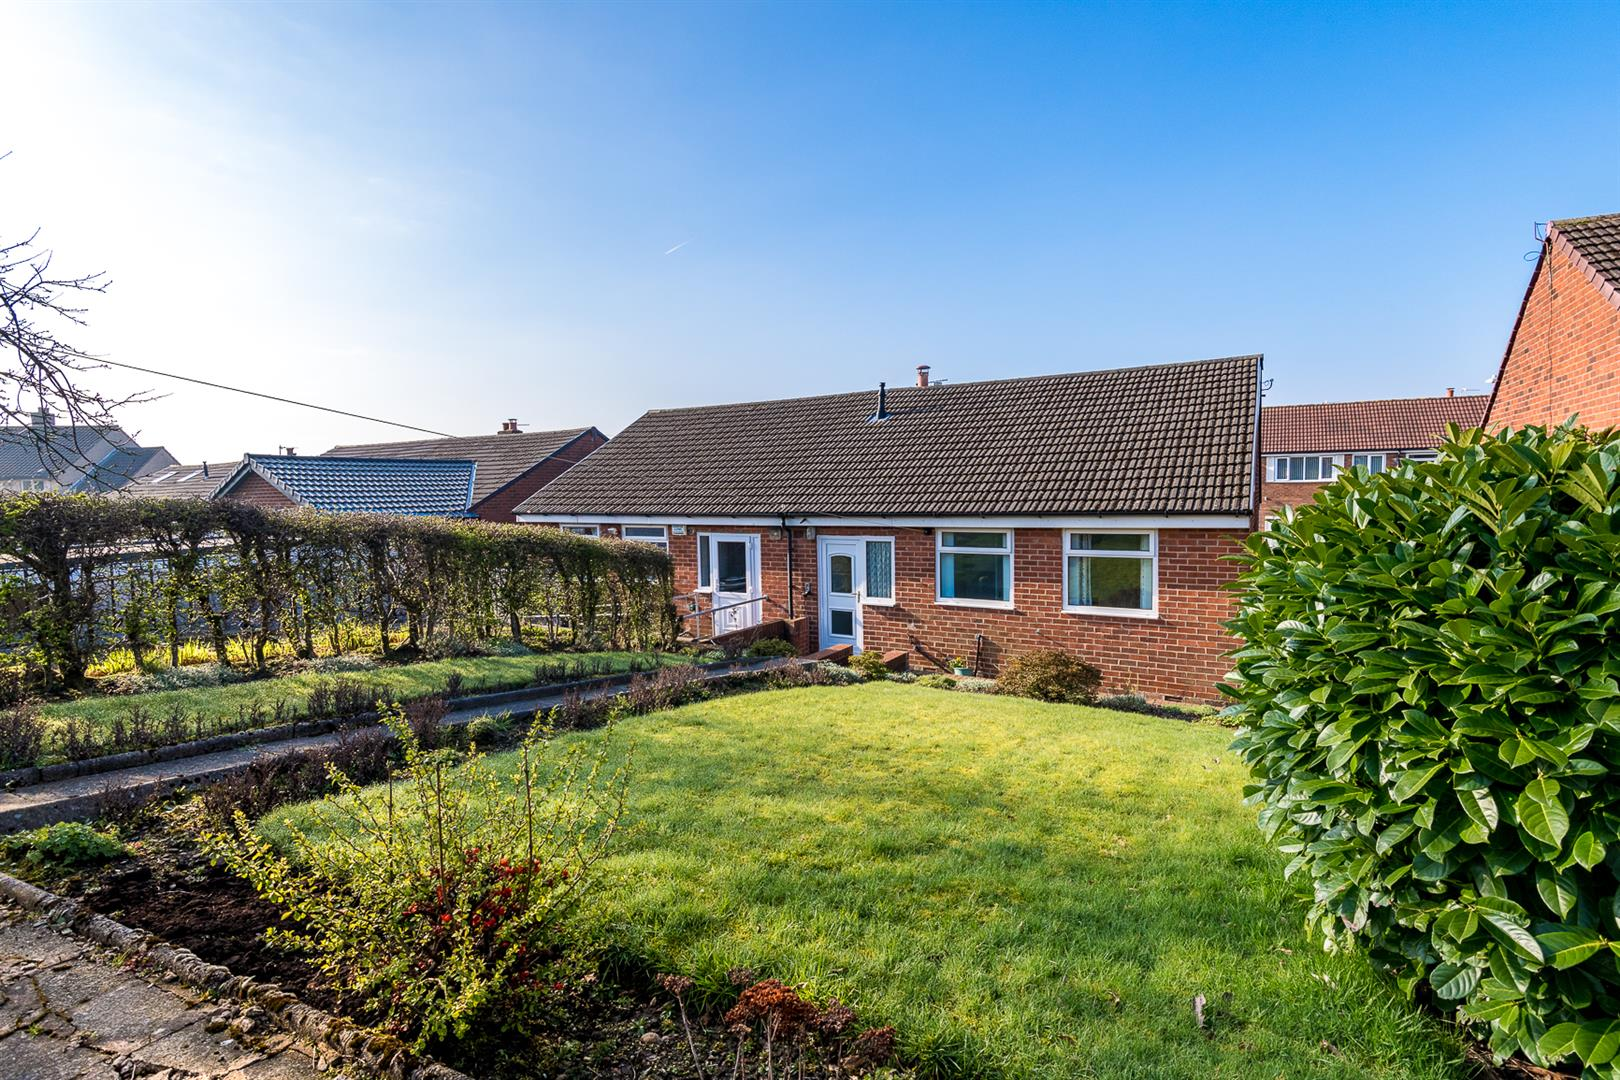 2 Bedroom Semi Detached Bungalow Sale Agreed Image 14